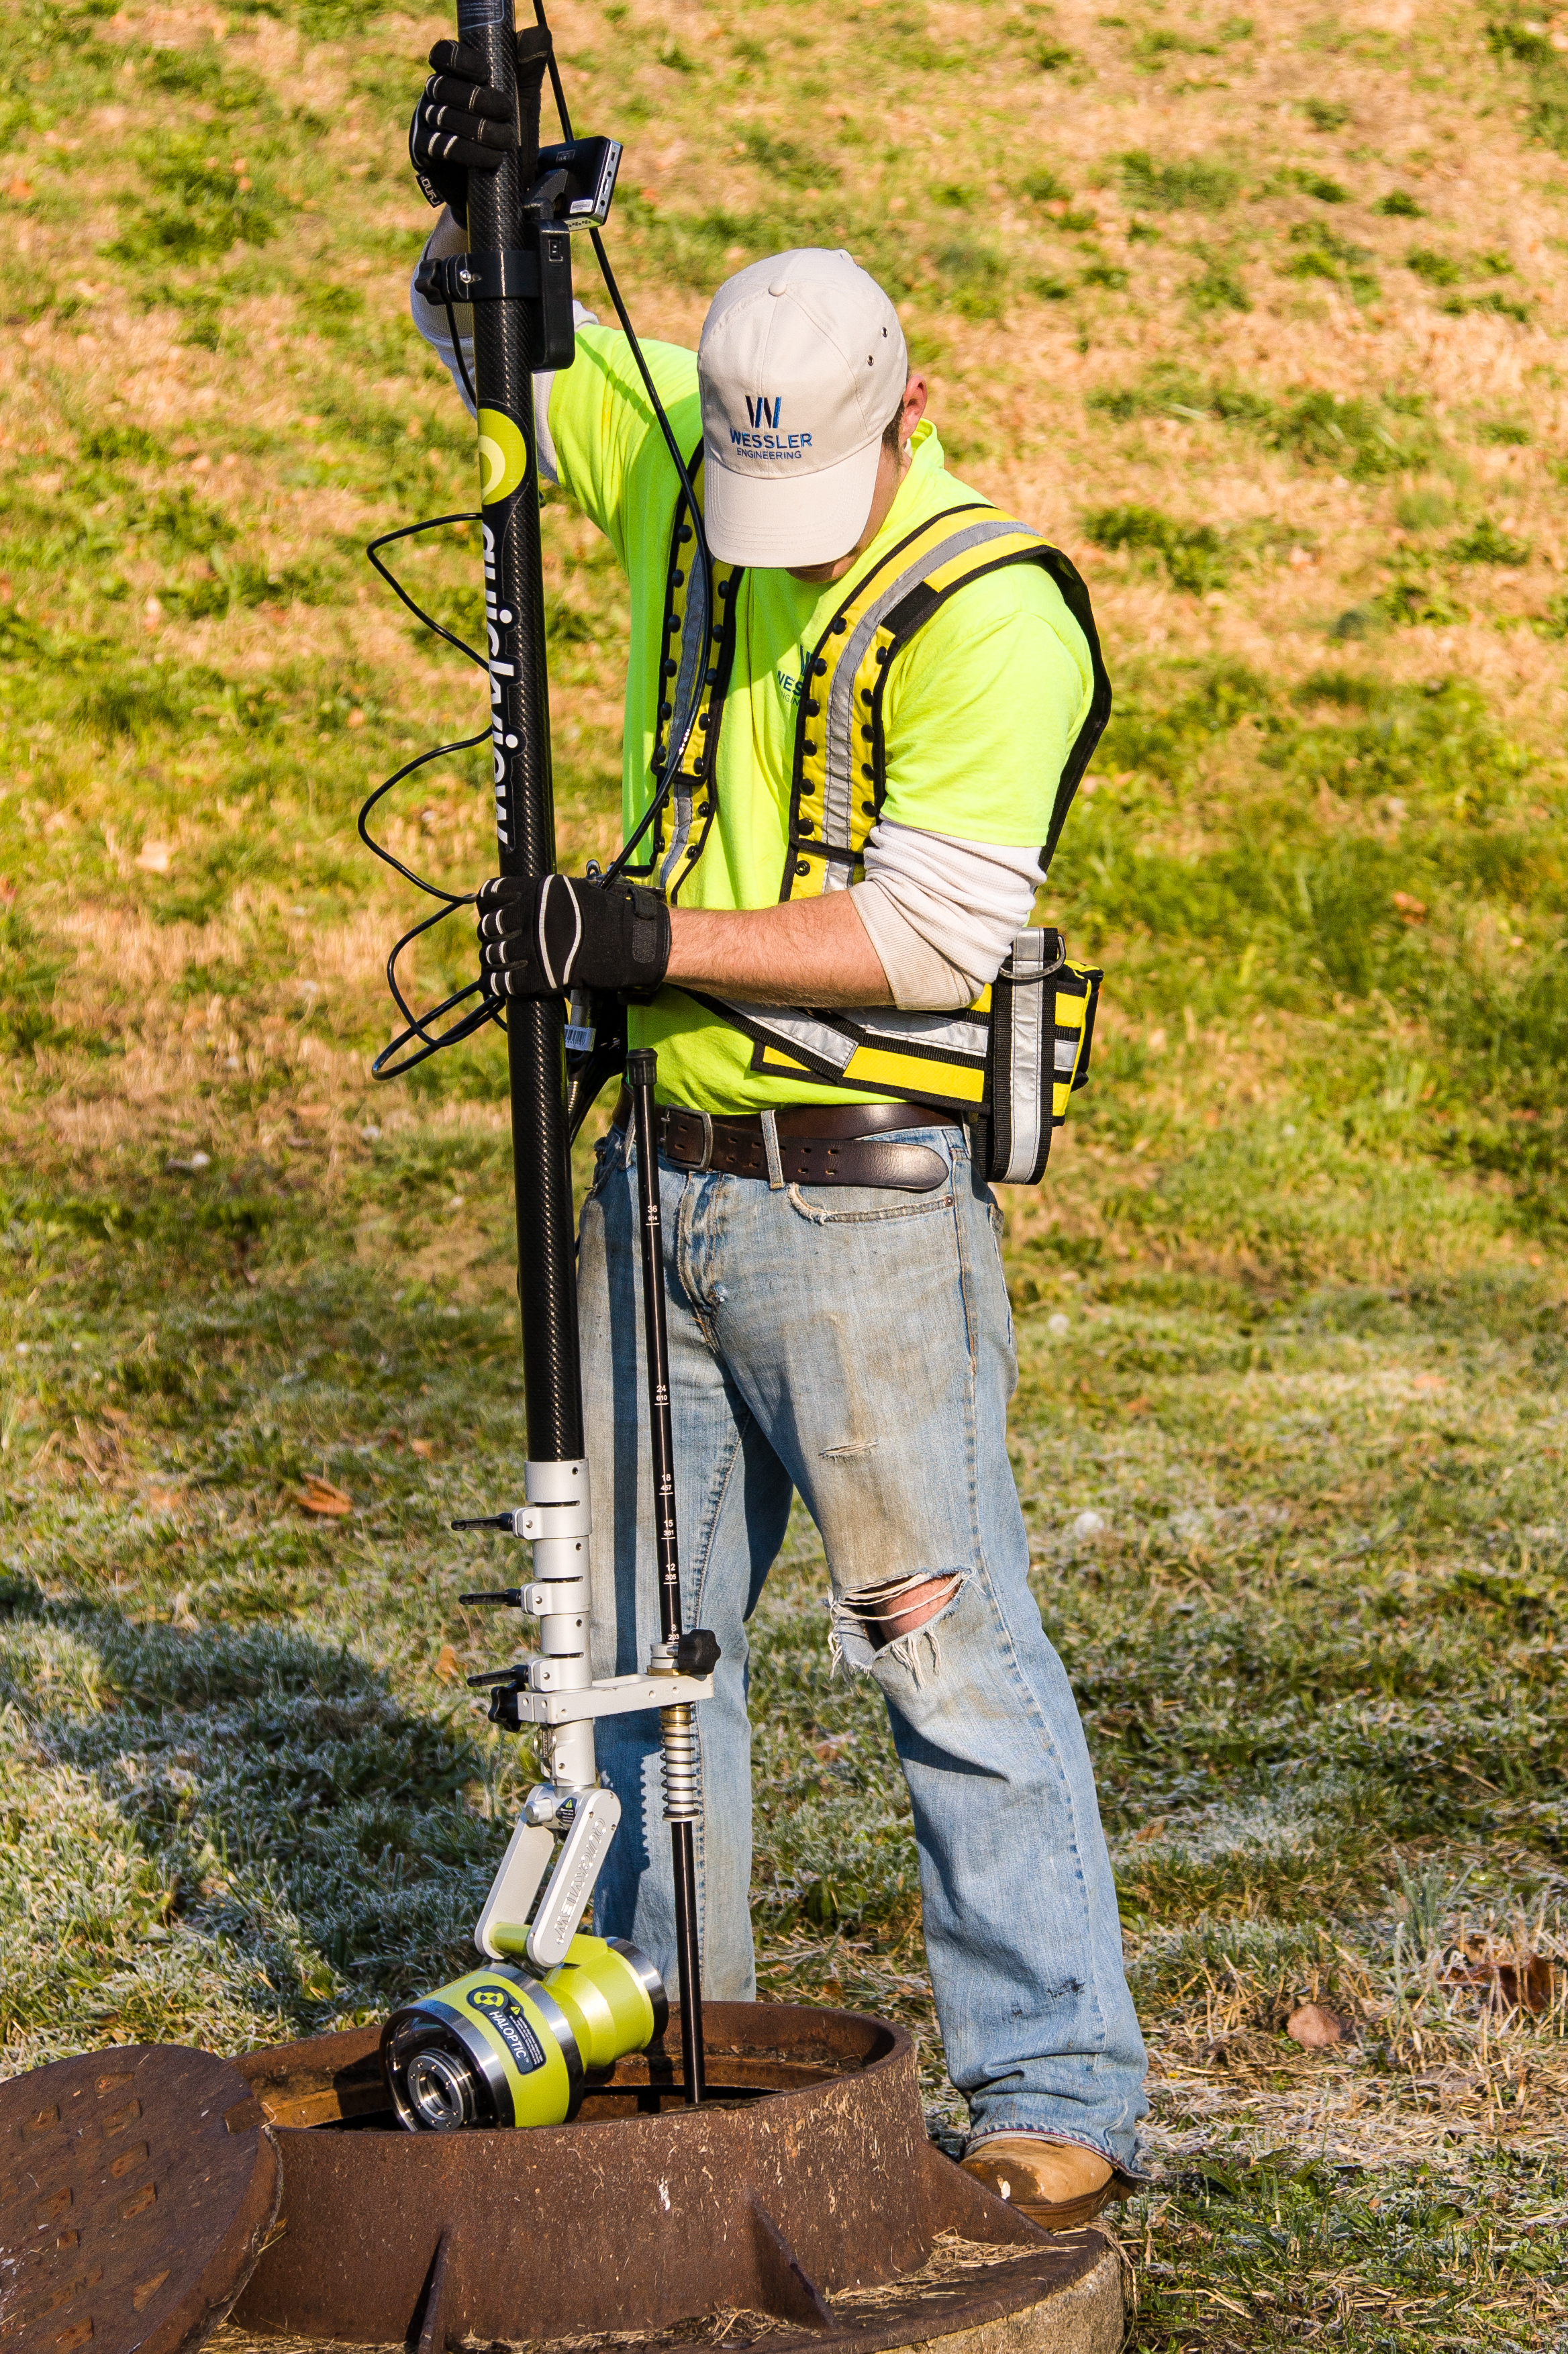 Performing Quick and Economical Sewer Inspections